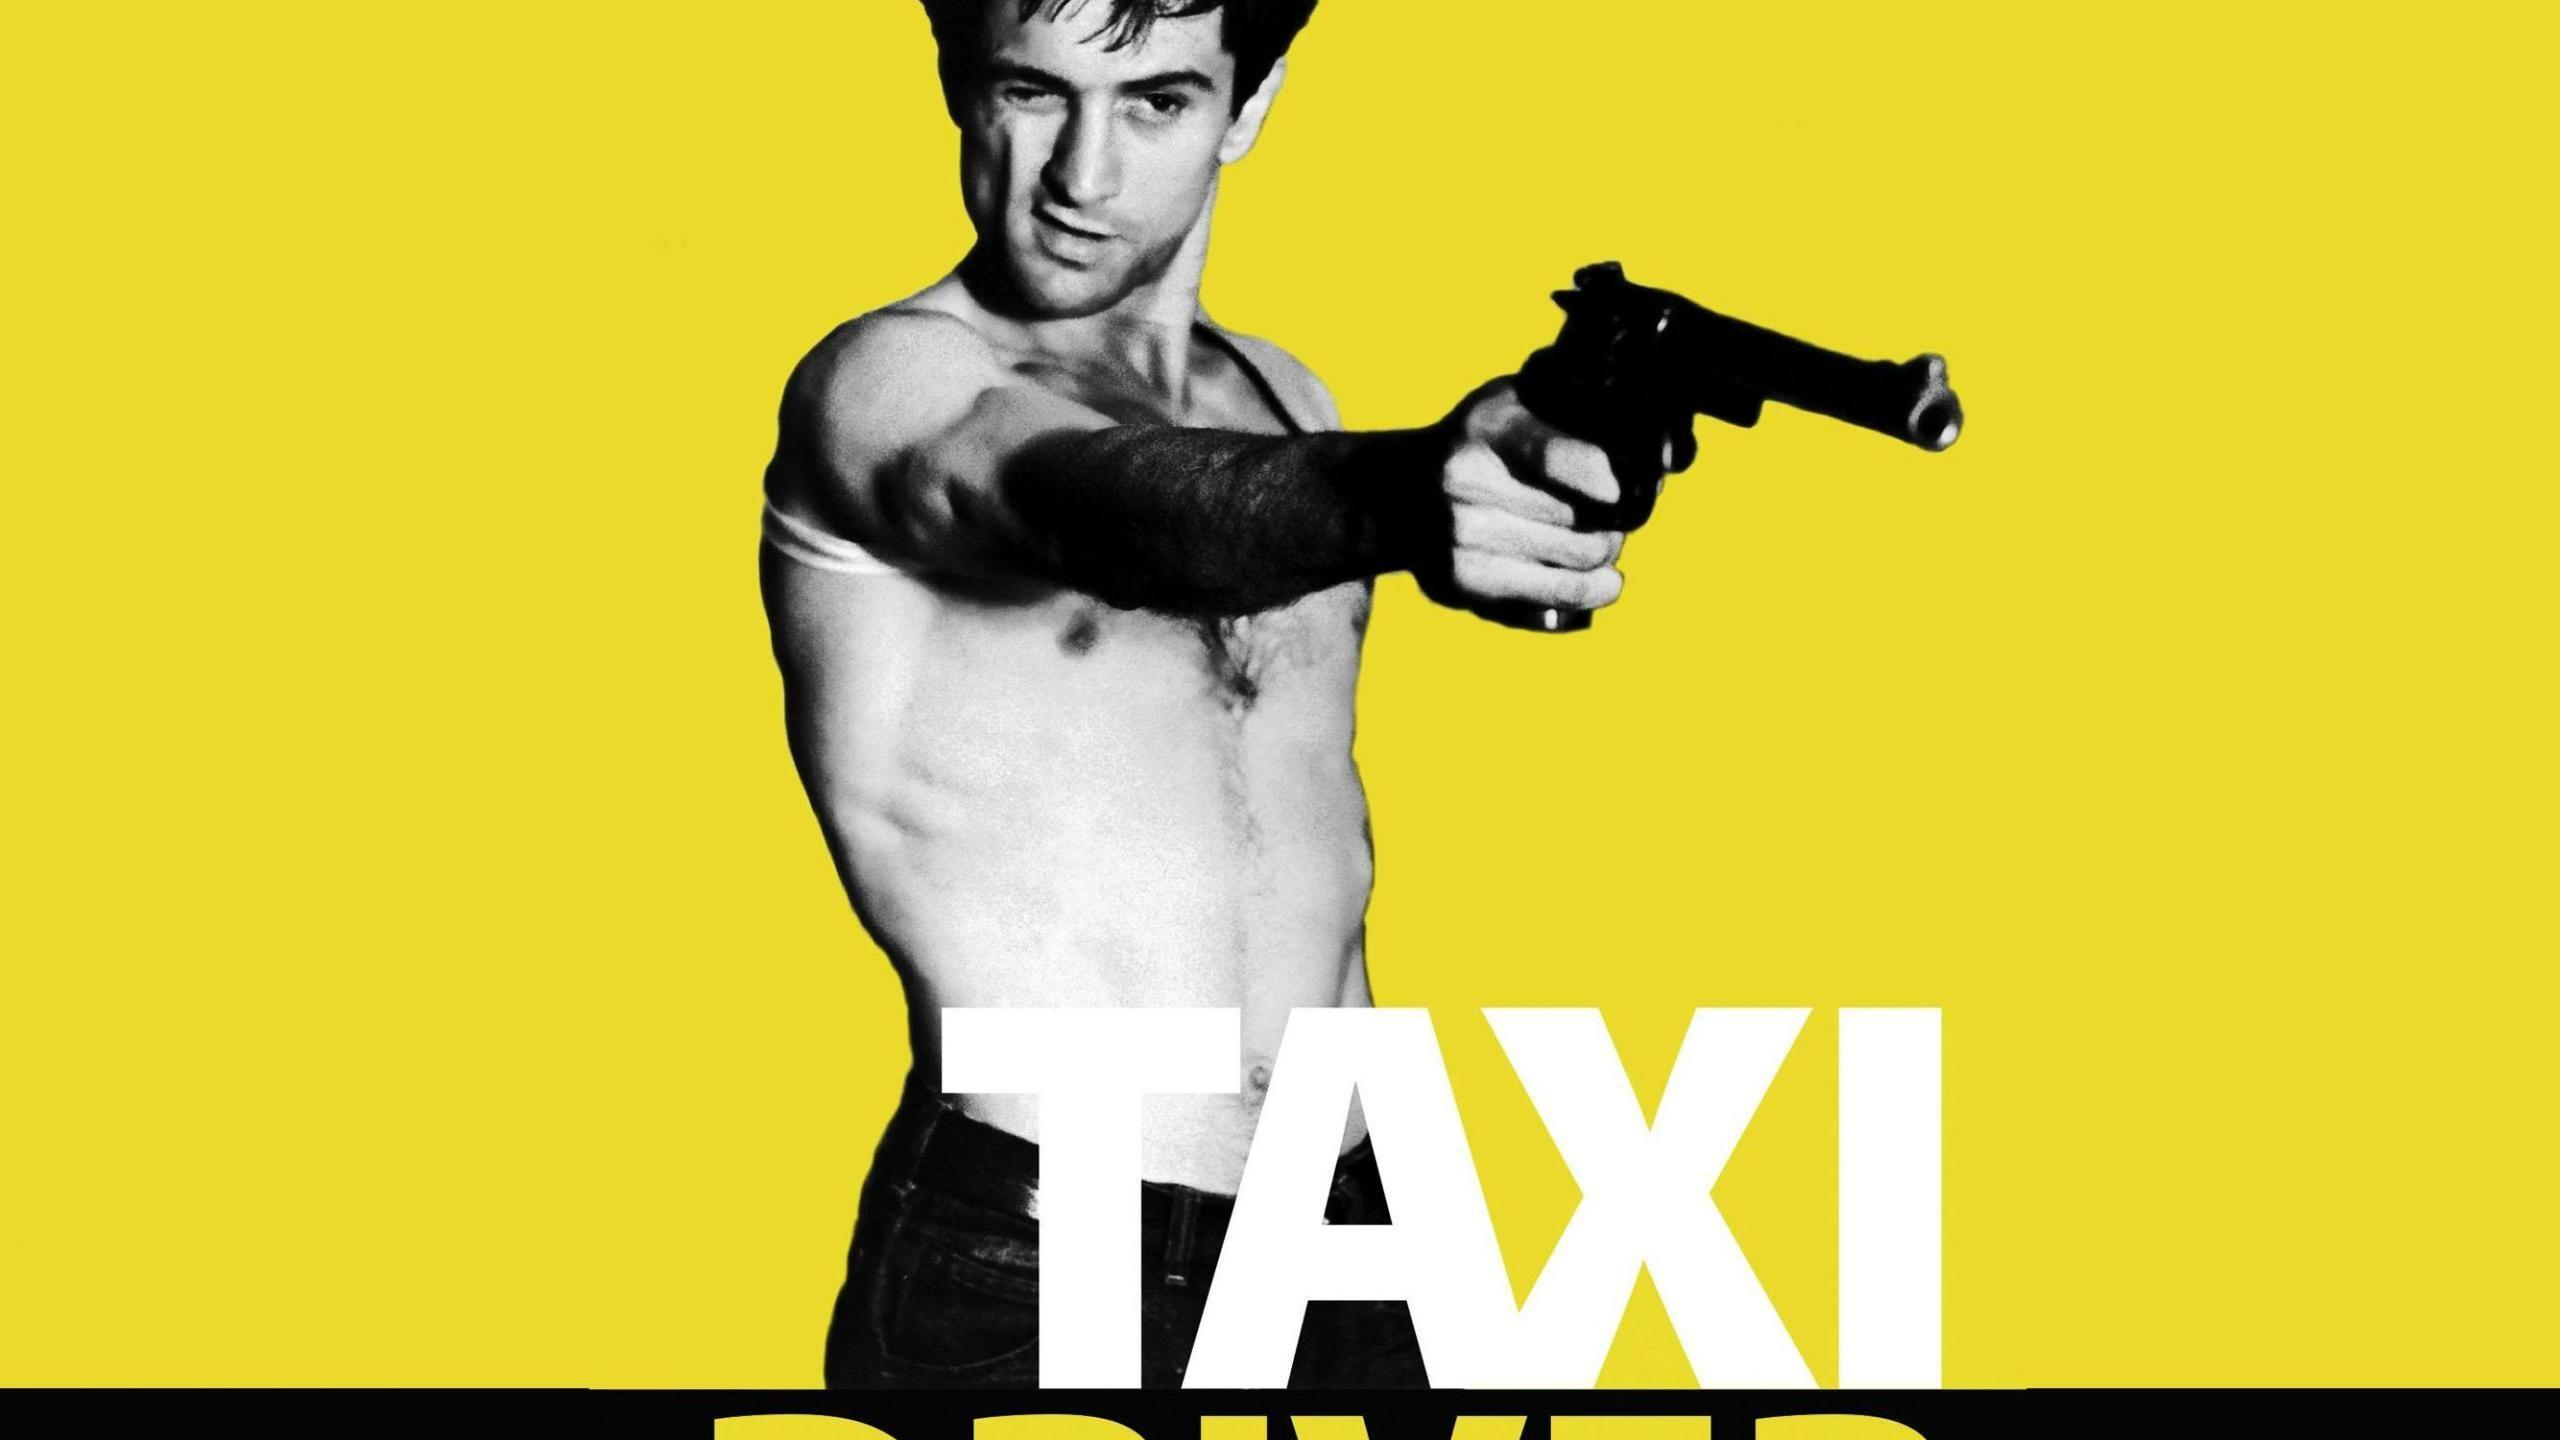 Movie Taxi Driver Taxi driver HD Wallpapers, Desktop Backgrounds